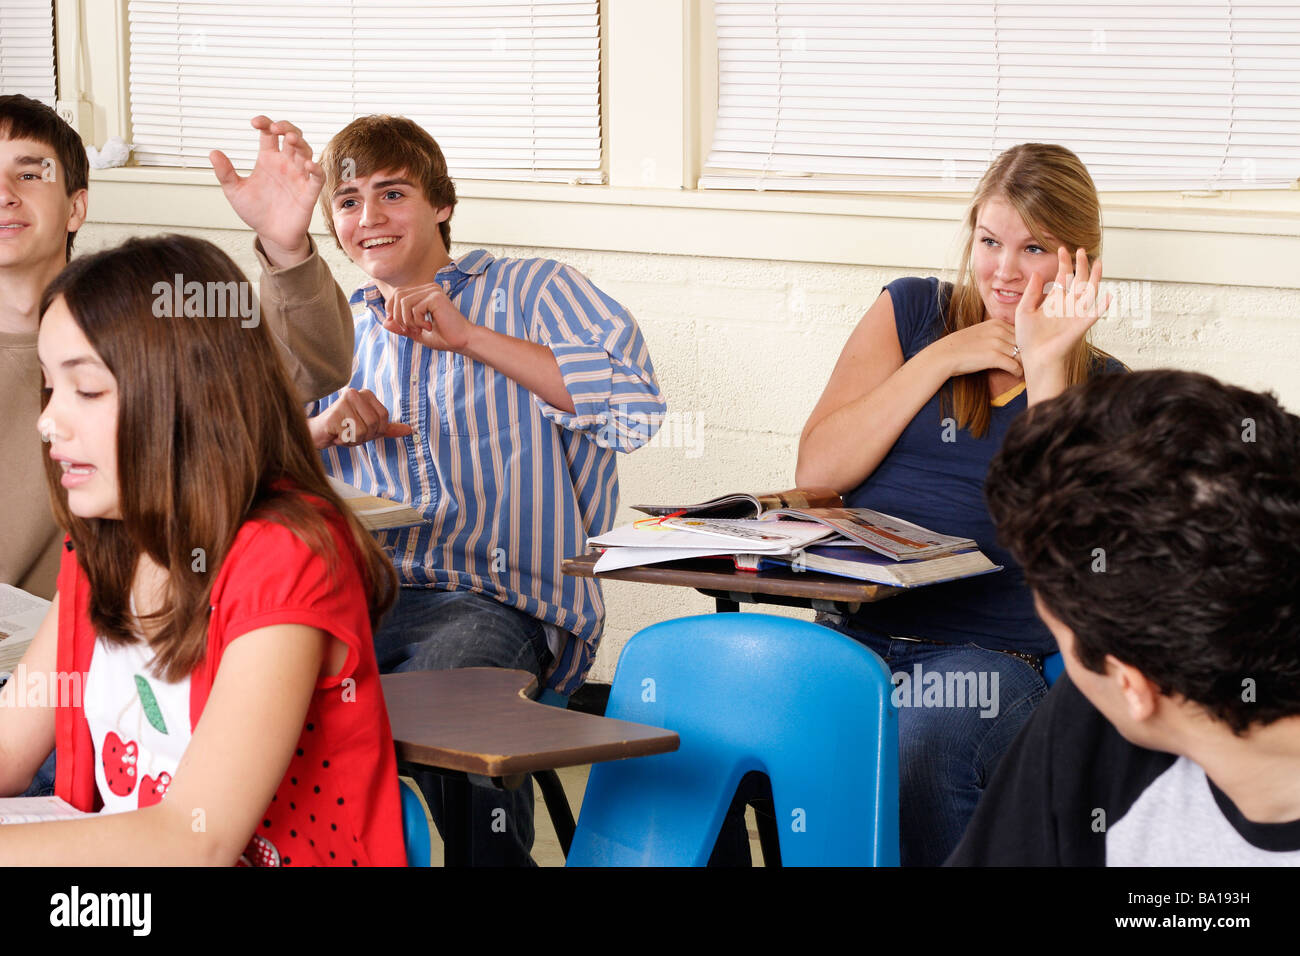 Students acting up in class throwing paper wads - Stock Image